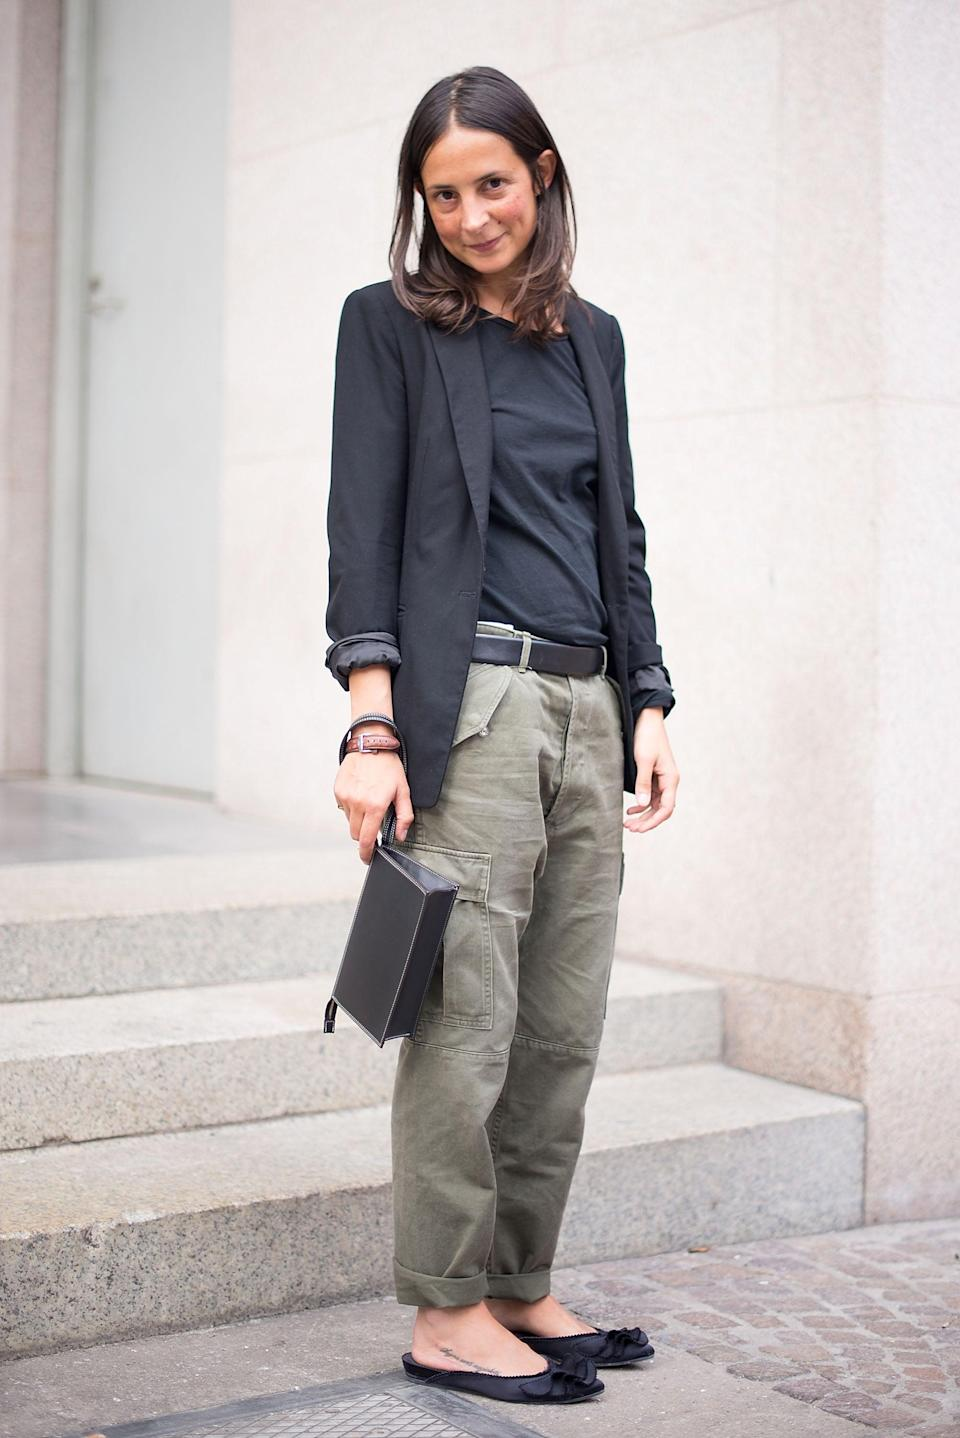 <p>This take-your-cargo-pants-to-work look relies on understated separates, simple, functional footwear, and a blazer to tie it all together.</p>